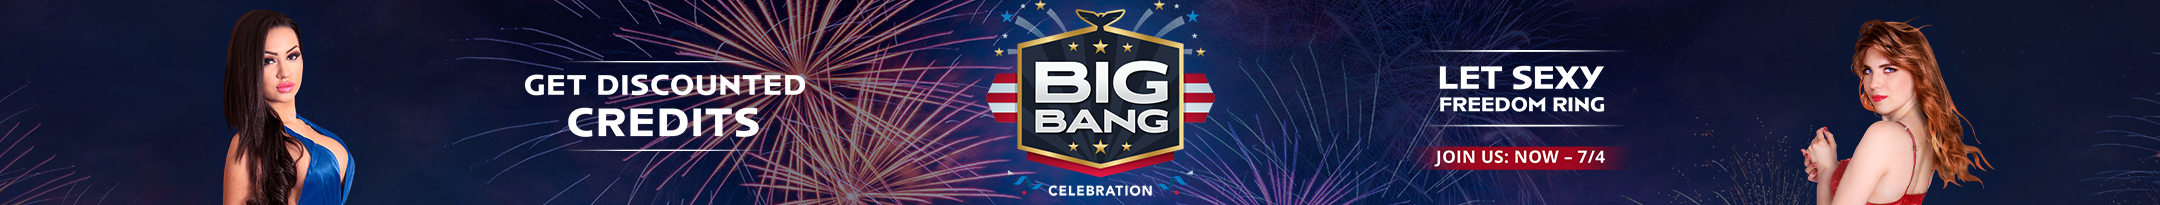 Big Bang Discount (Day 4) Promo